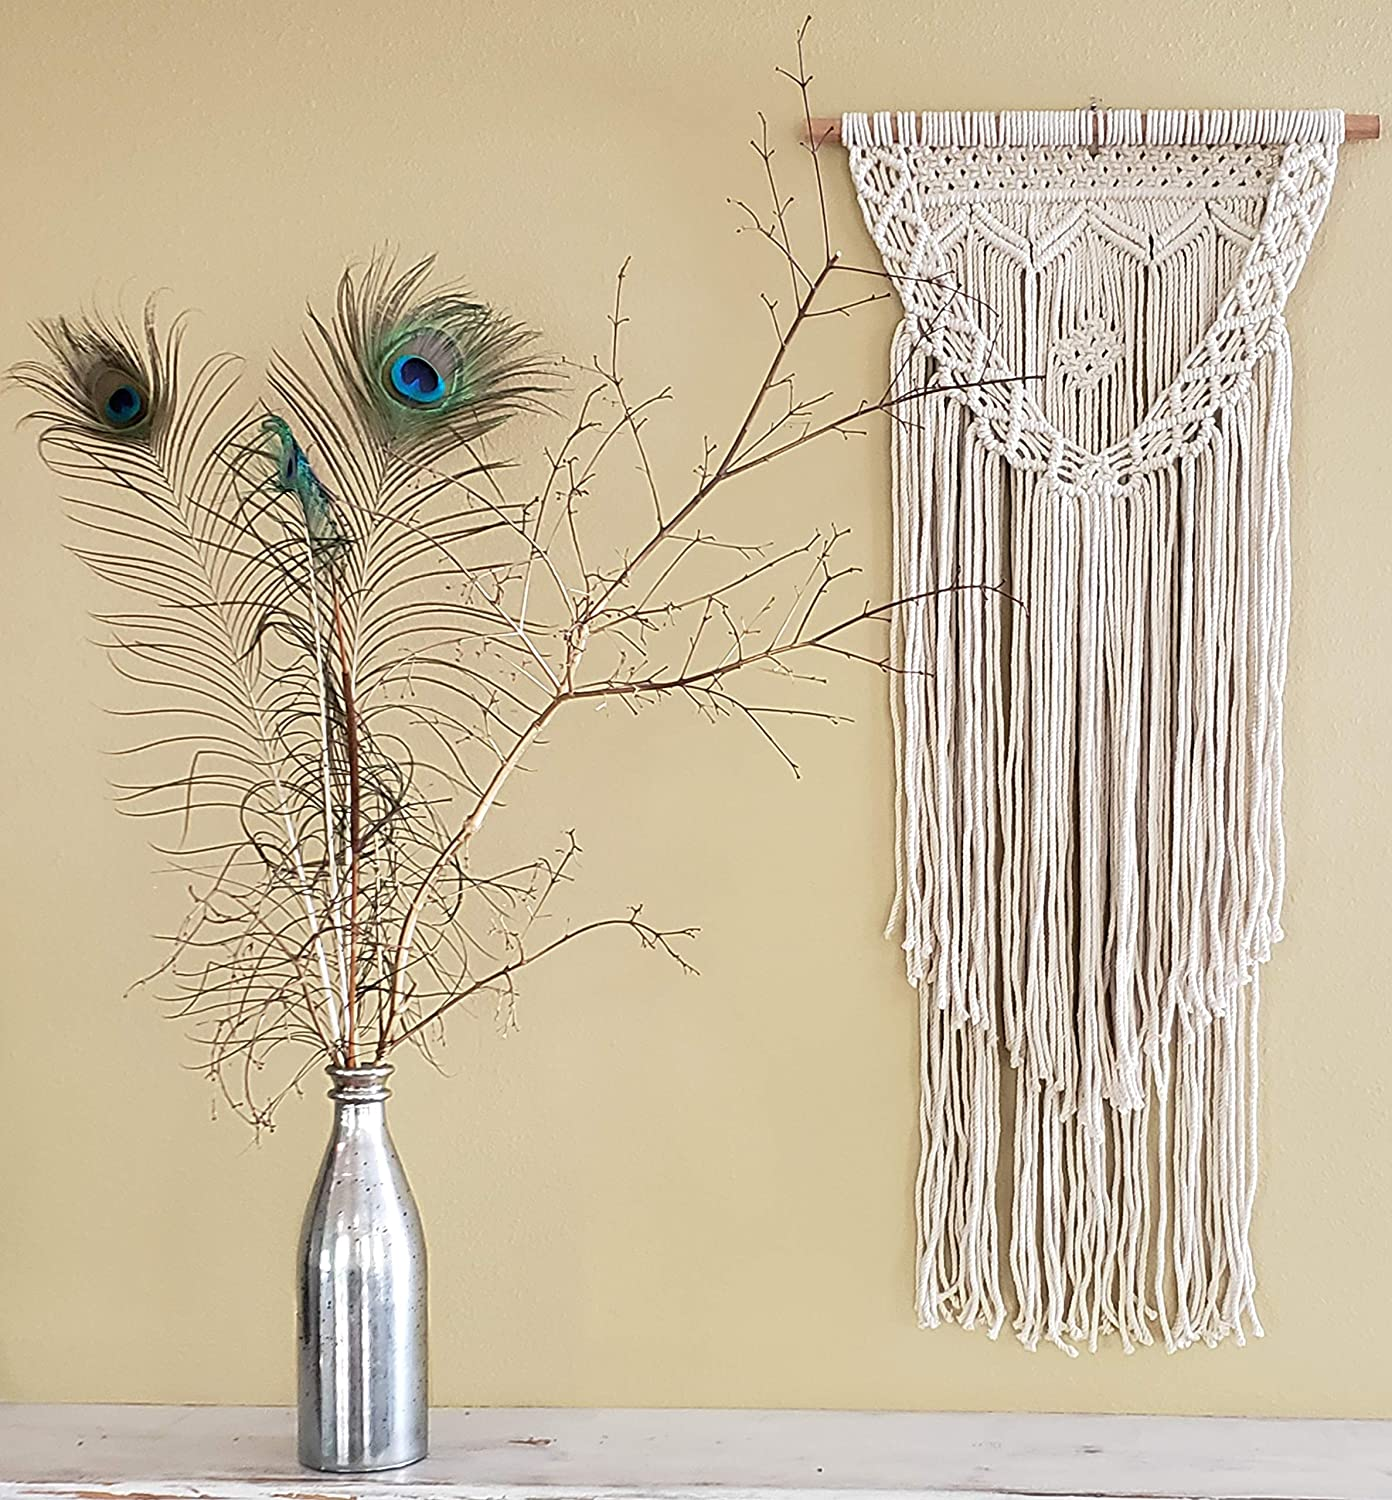 "Boho Macrame Wall Hanging Decor – Beige 16"" x 36"" Modern Bohemian Wall Art Tapestry Decor for House, Apartment, Dorm Room, Nursery, Party Decorations, Wedding, Wall Ornament"